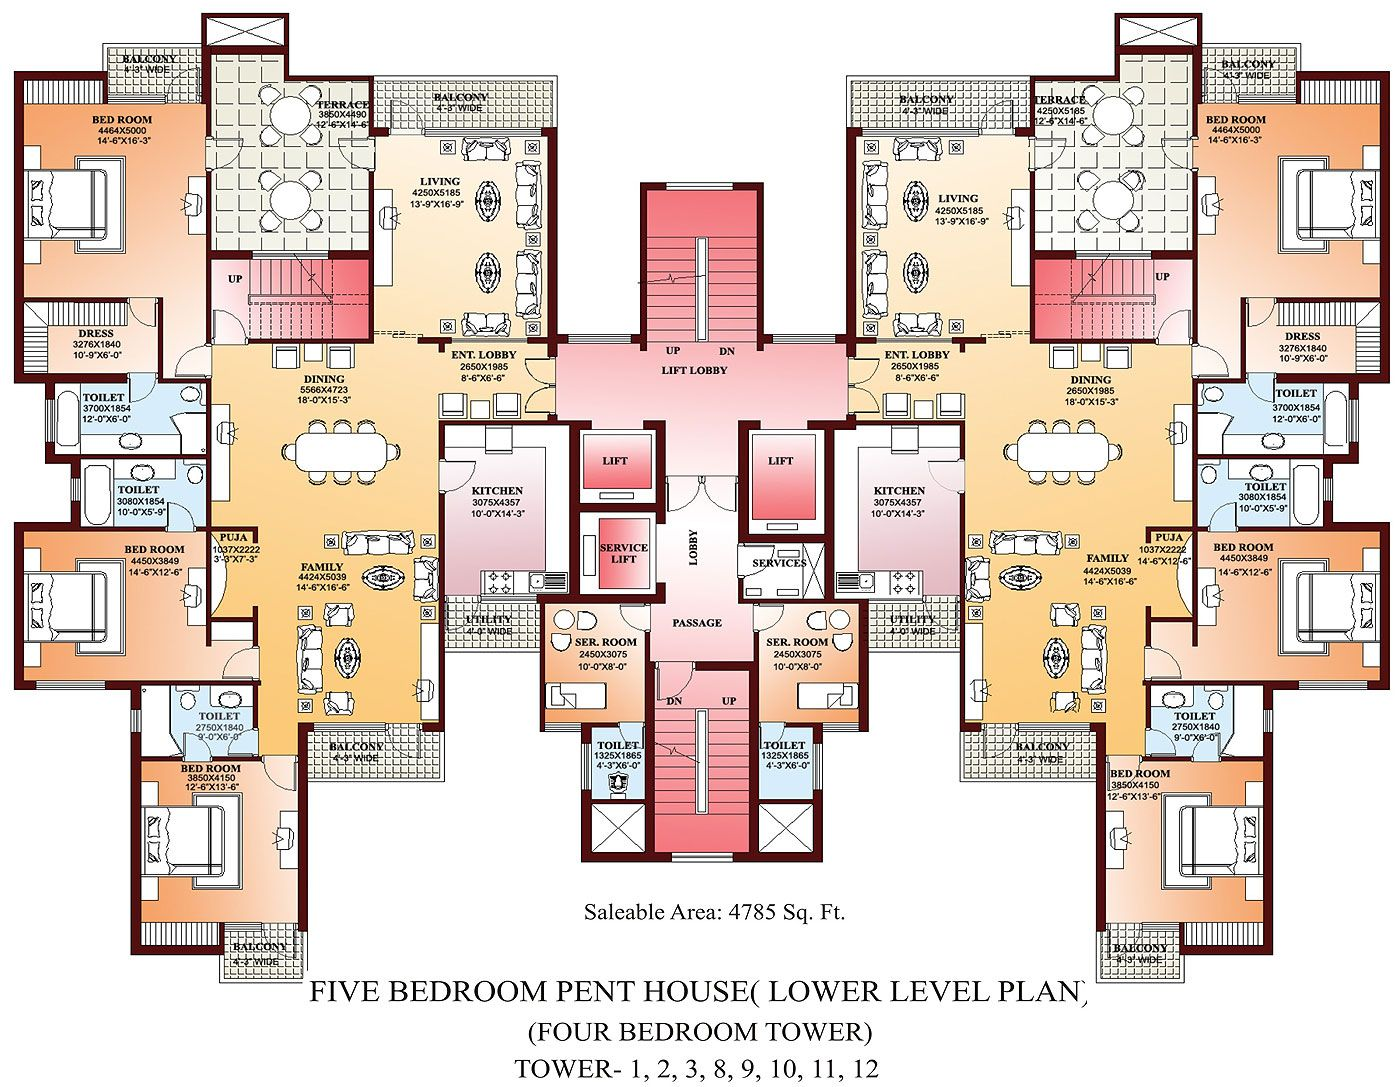 Floor Plans For 10 Million Dollar Home Google Search Home